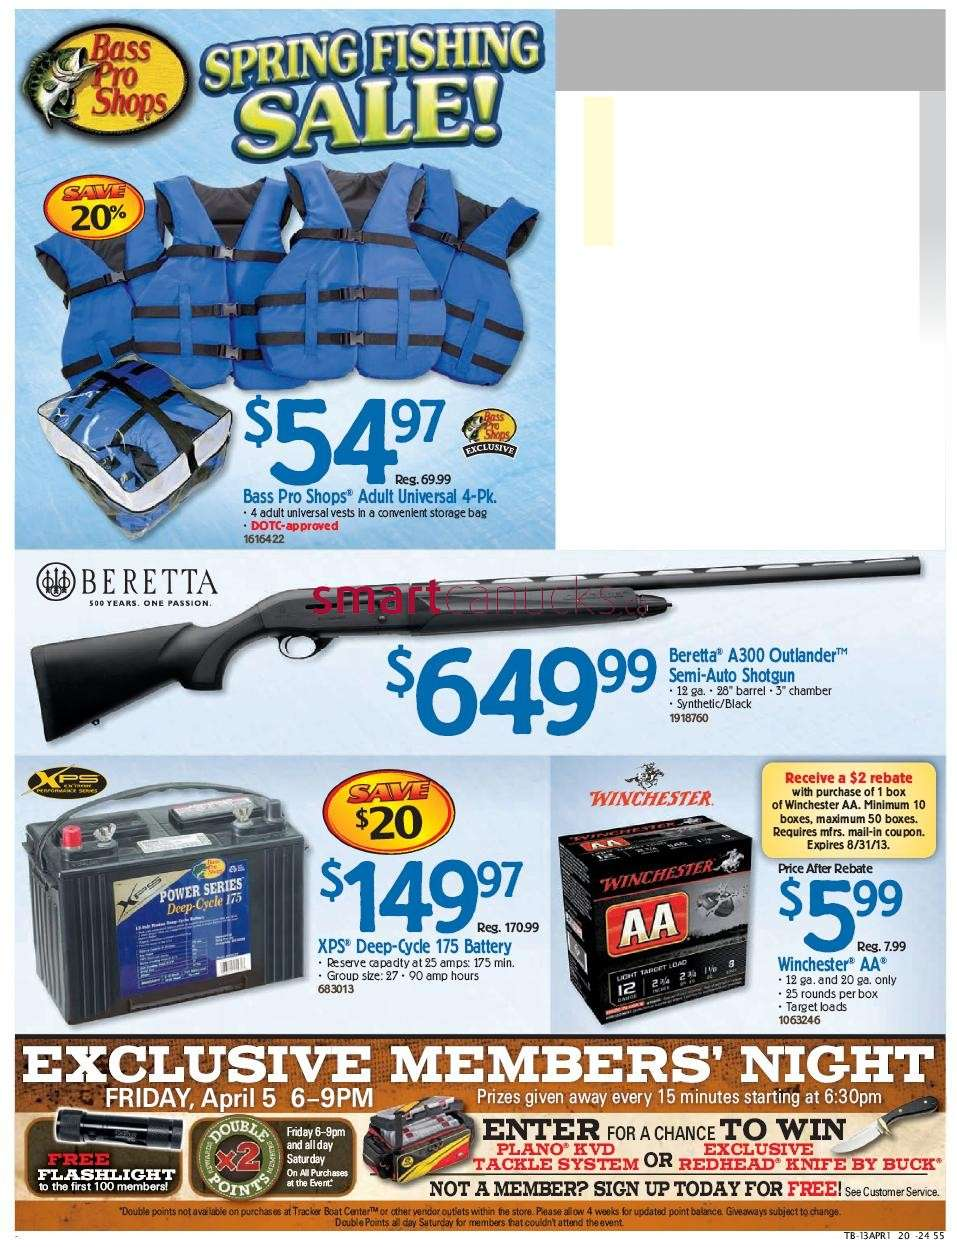 bass pro shops spring fishing sale flyer apr 1 to 14